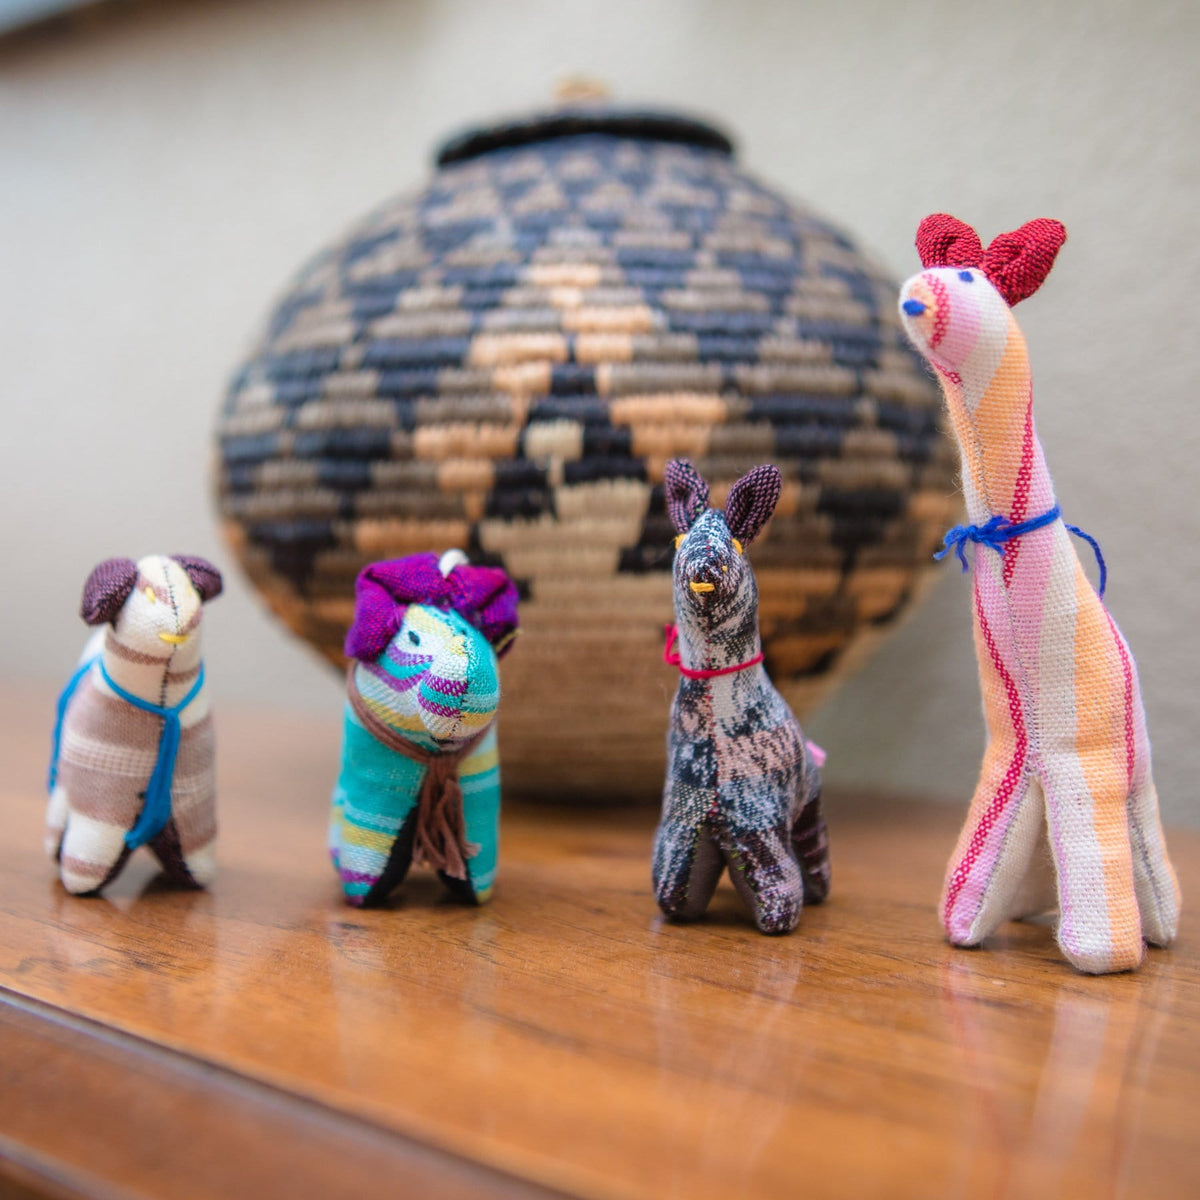 Group of Fair Trade Handmade Cotton Animal Toys In Use Lifestyle ?id=14052201234485